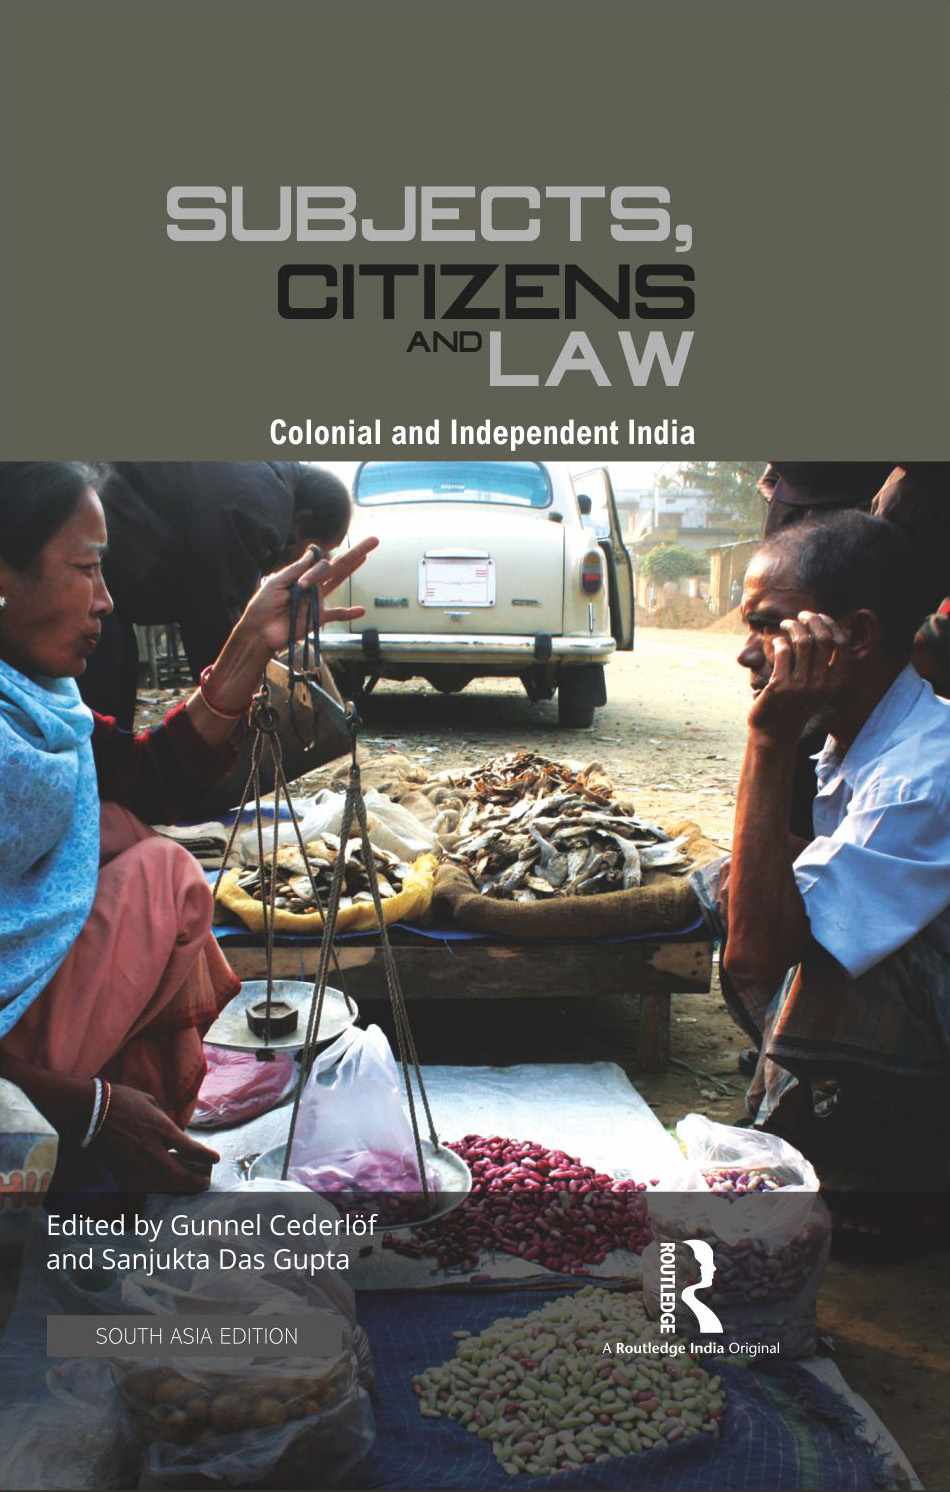 SubjectsCitizensLaw_Delhi front cover.jpg